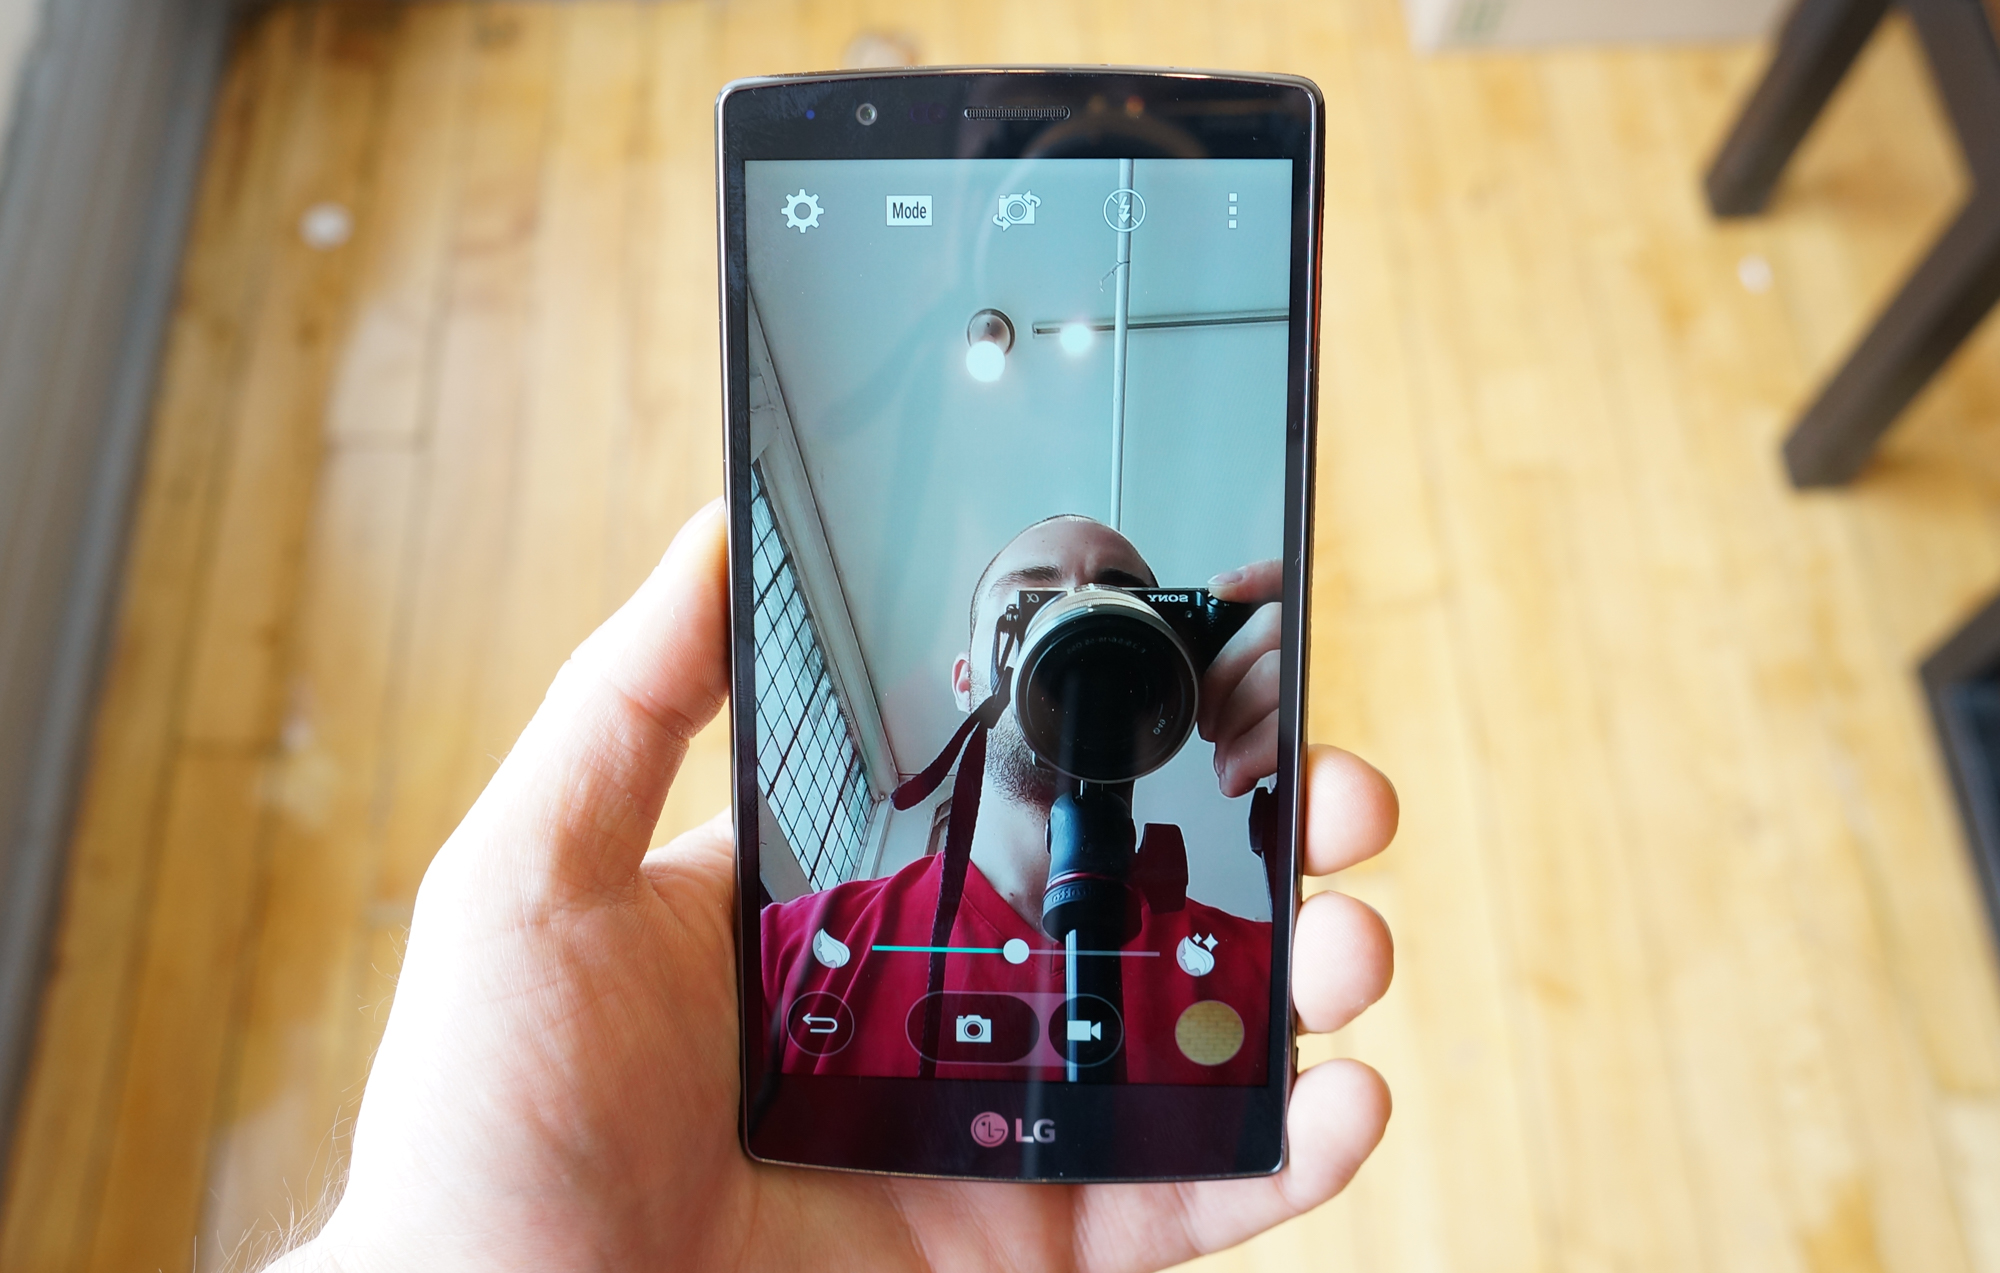 lgg4review-03748